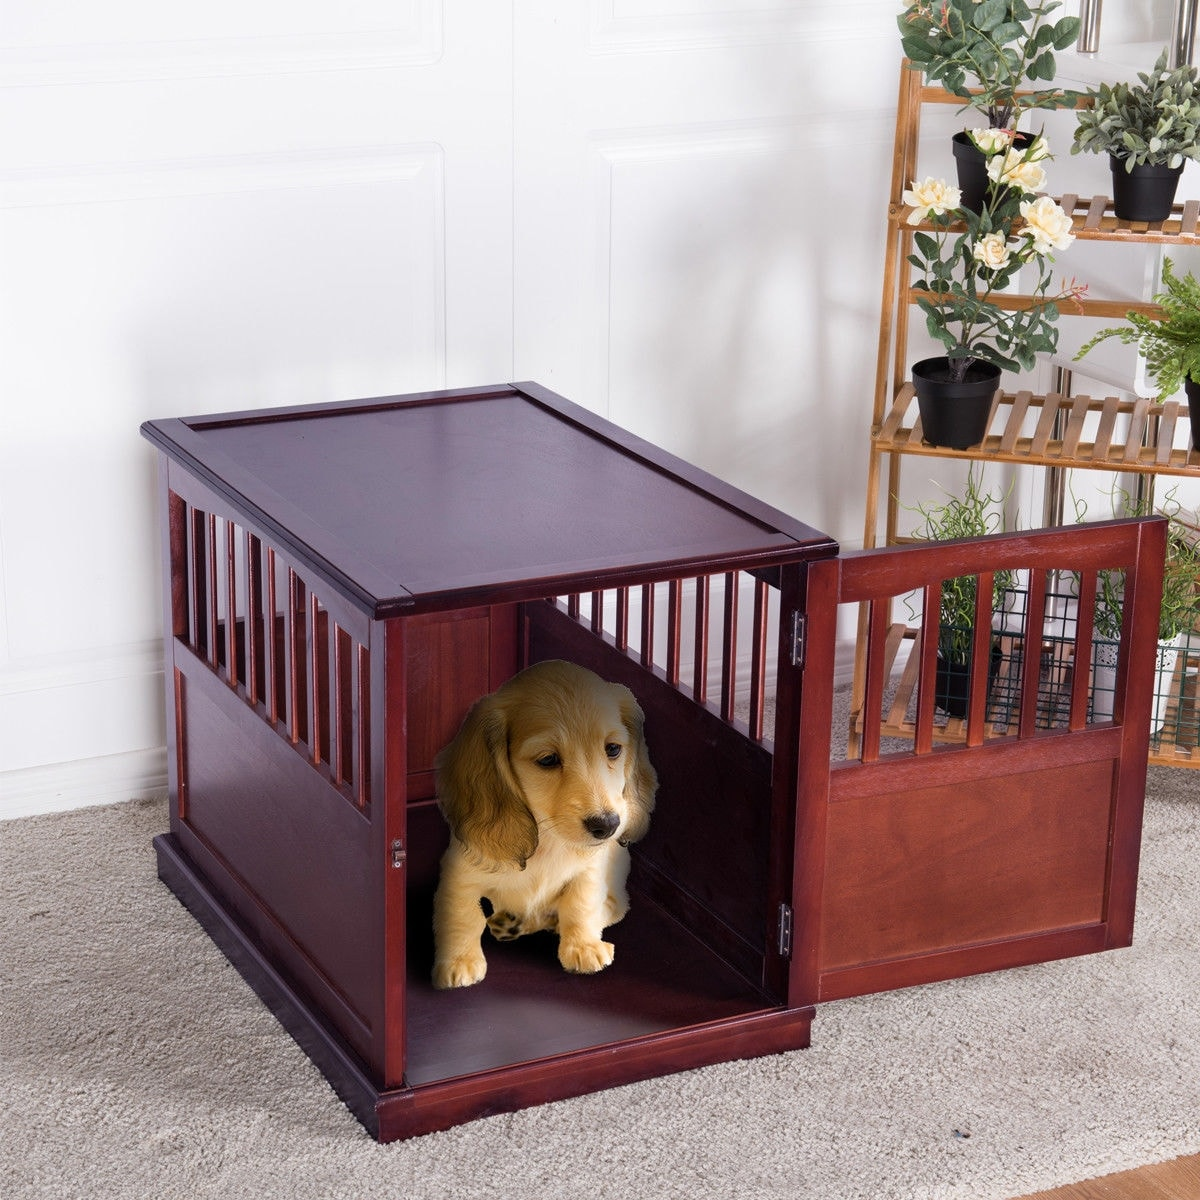 Gymax 24u0027u0027 Wood Pet Crate End Table Cat Dog Kennel Cage W/ Lockable Door  Furniture   Free Shipping Today   Overstock   26542356